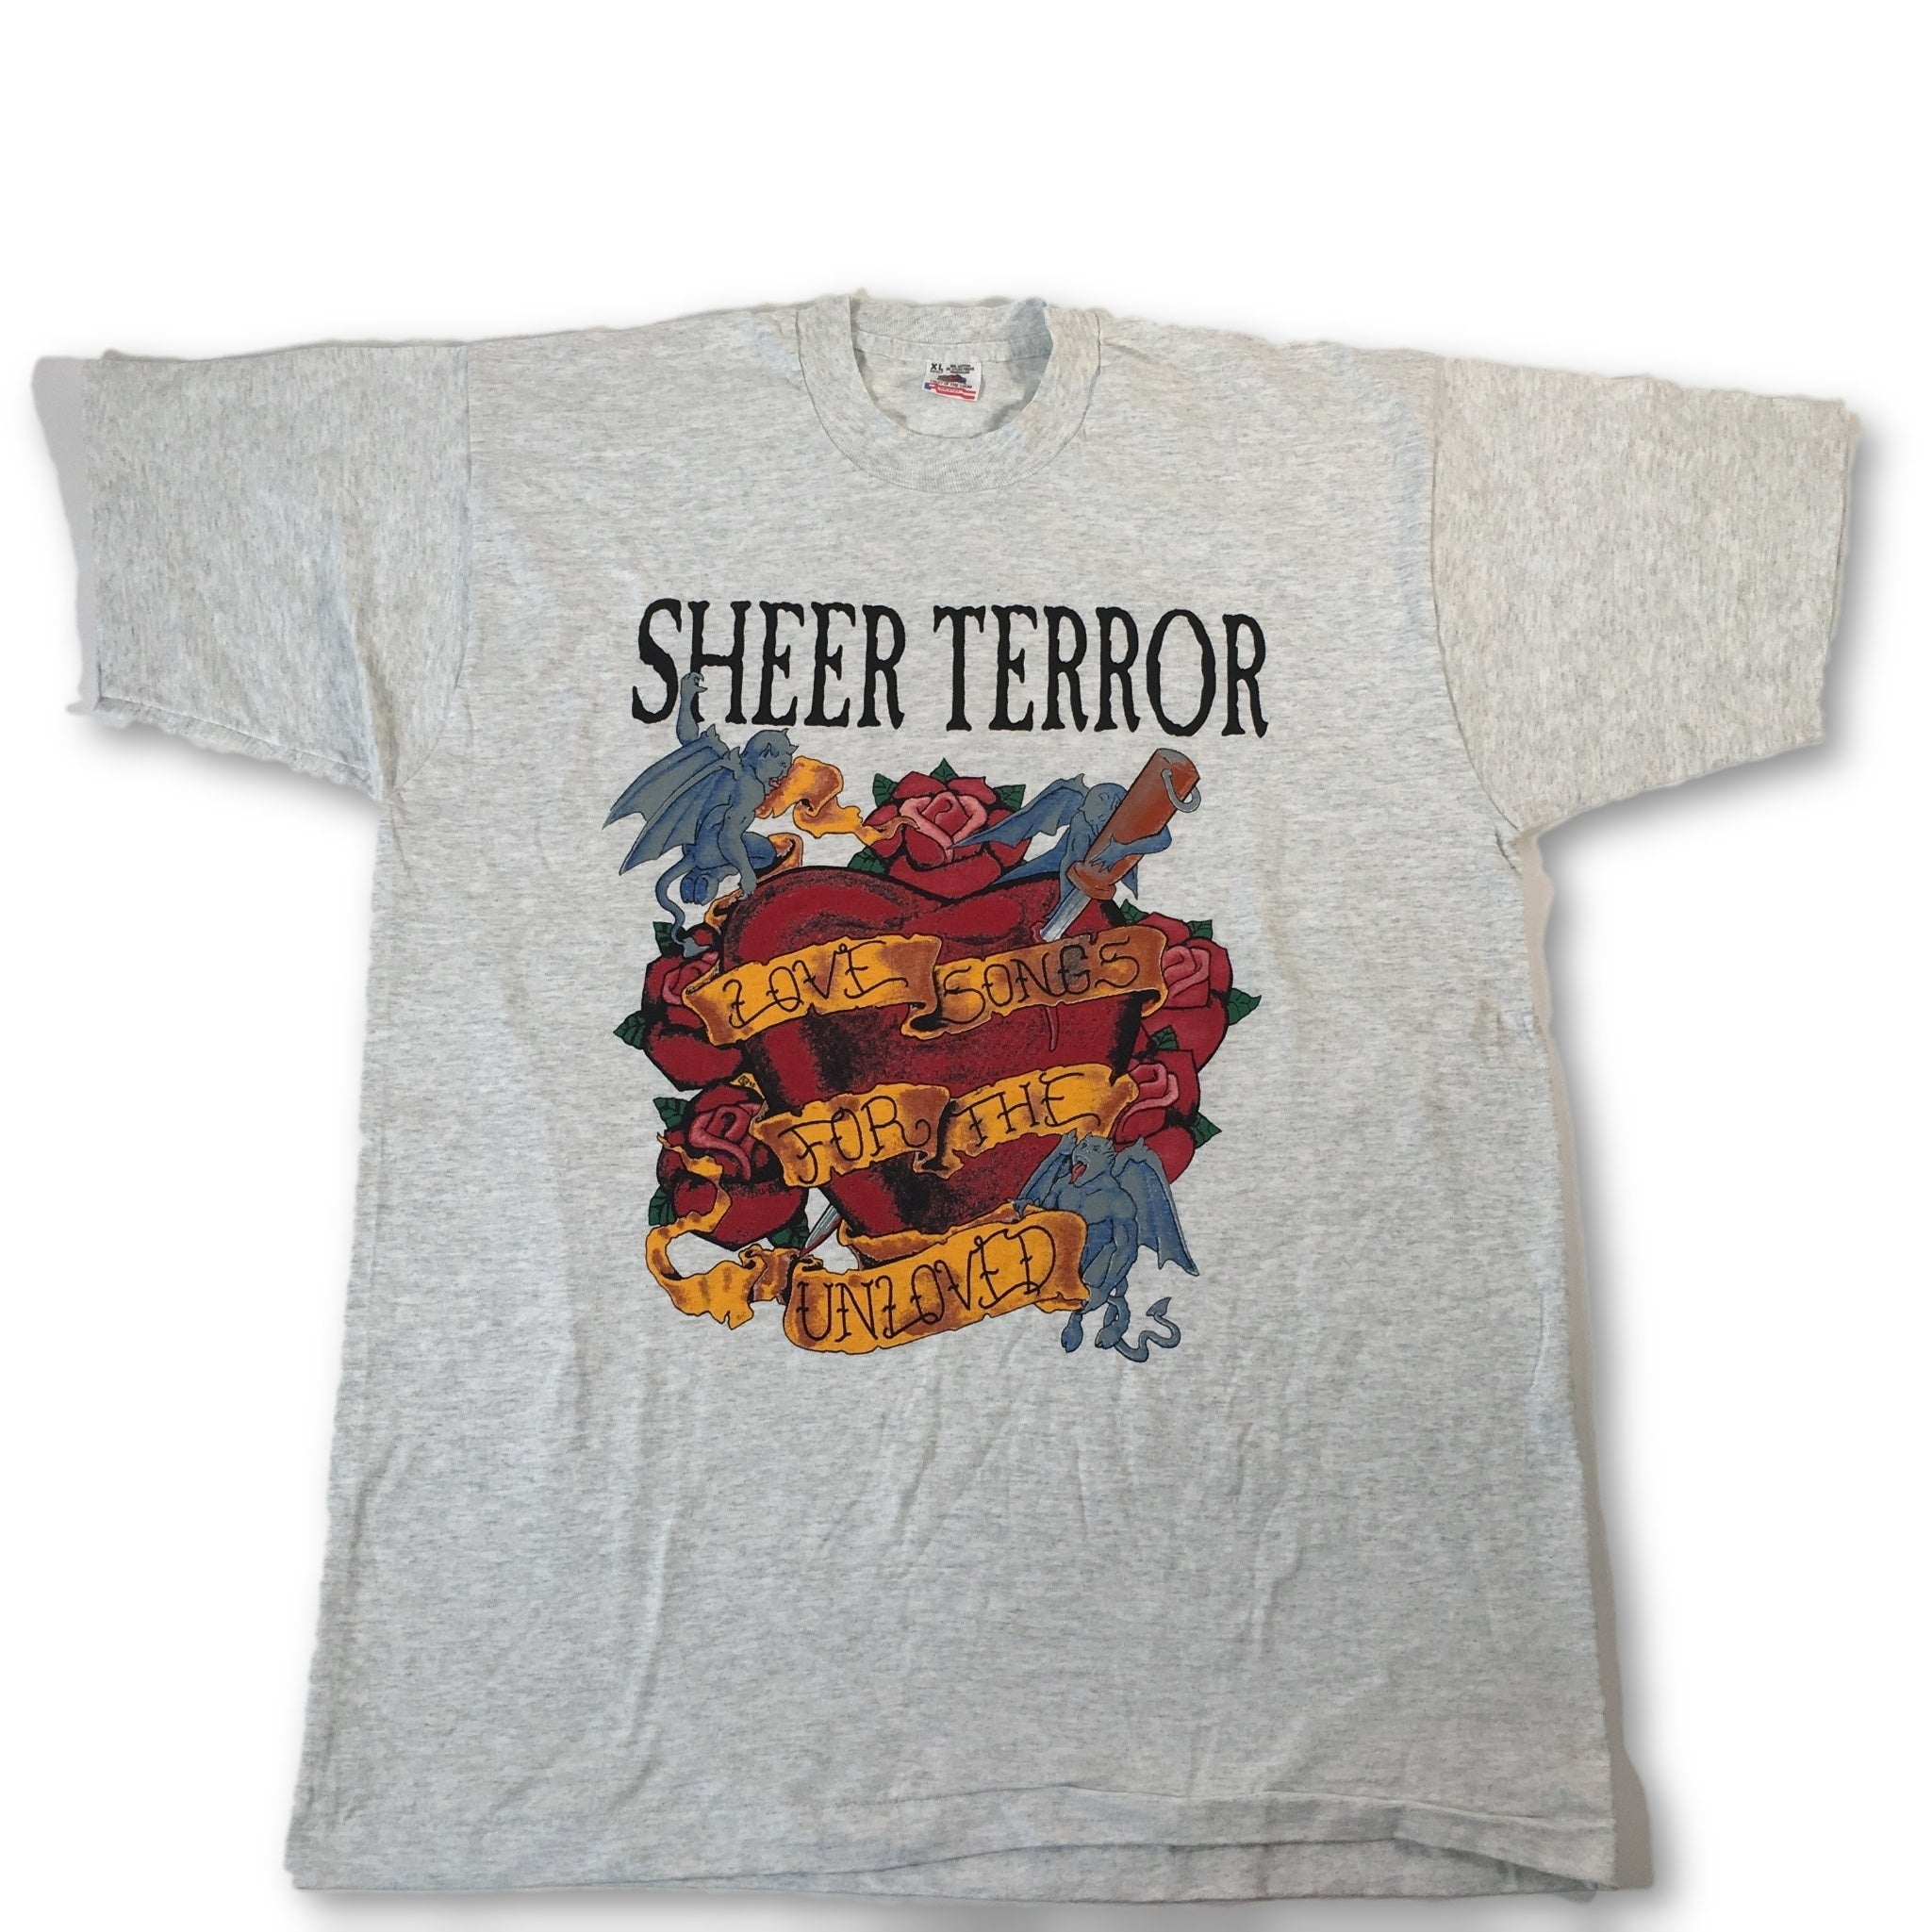 "Vintage Sheer Terror ""Love Songs"" T-Shirt"